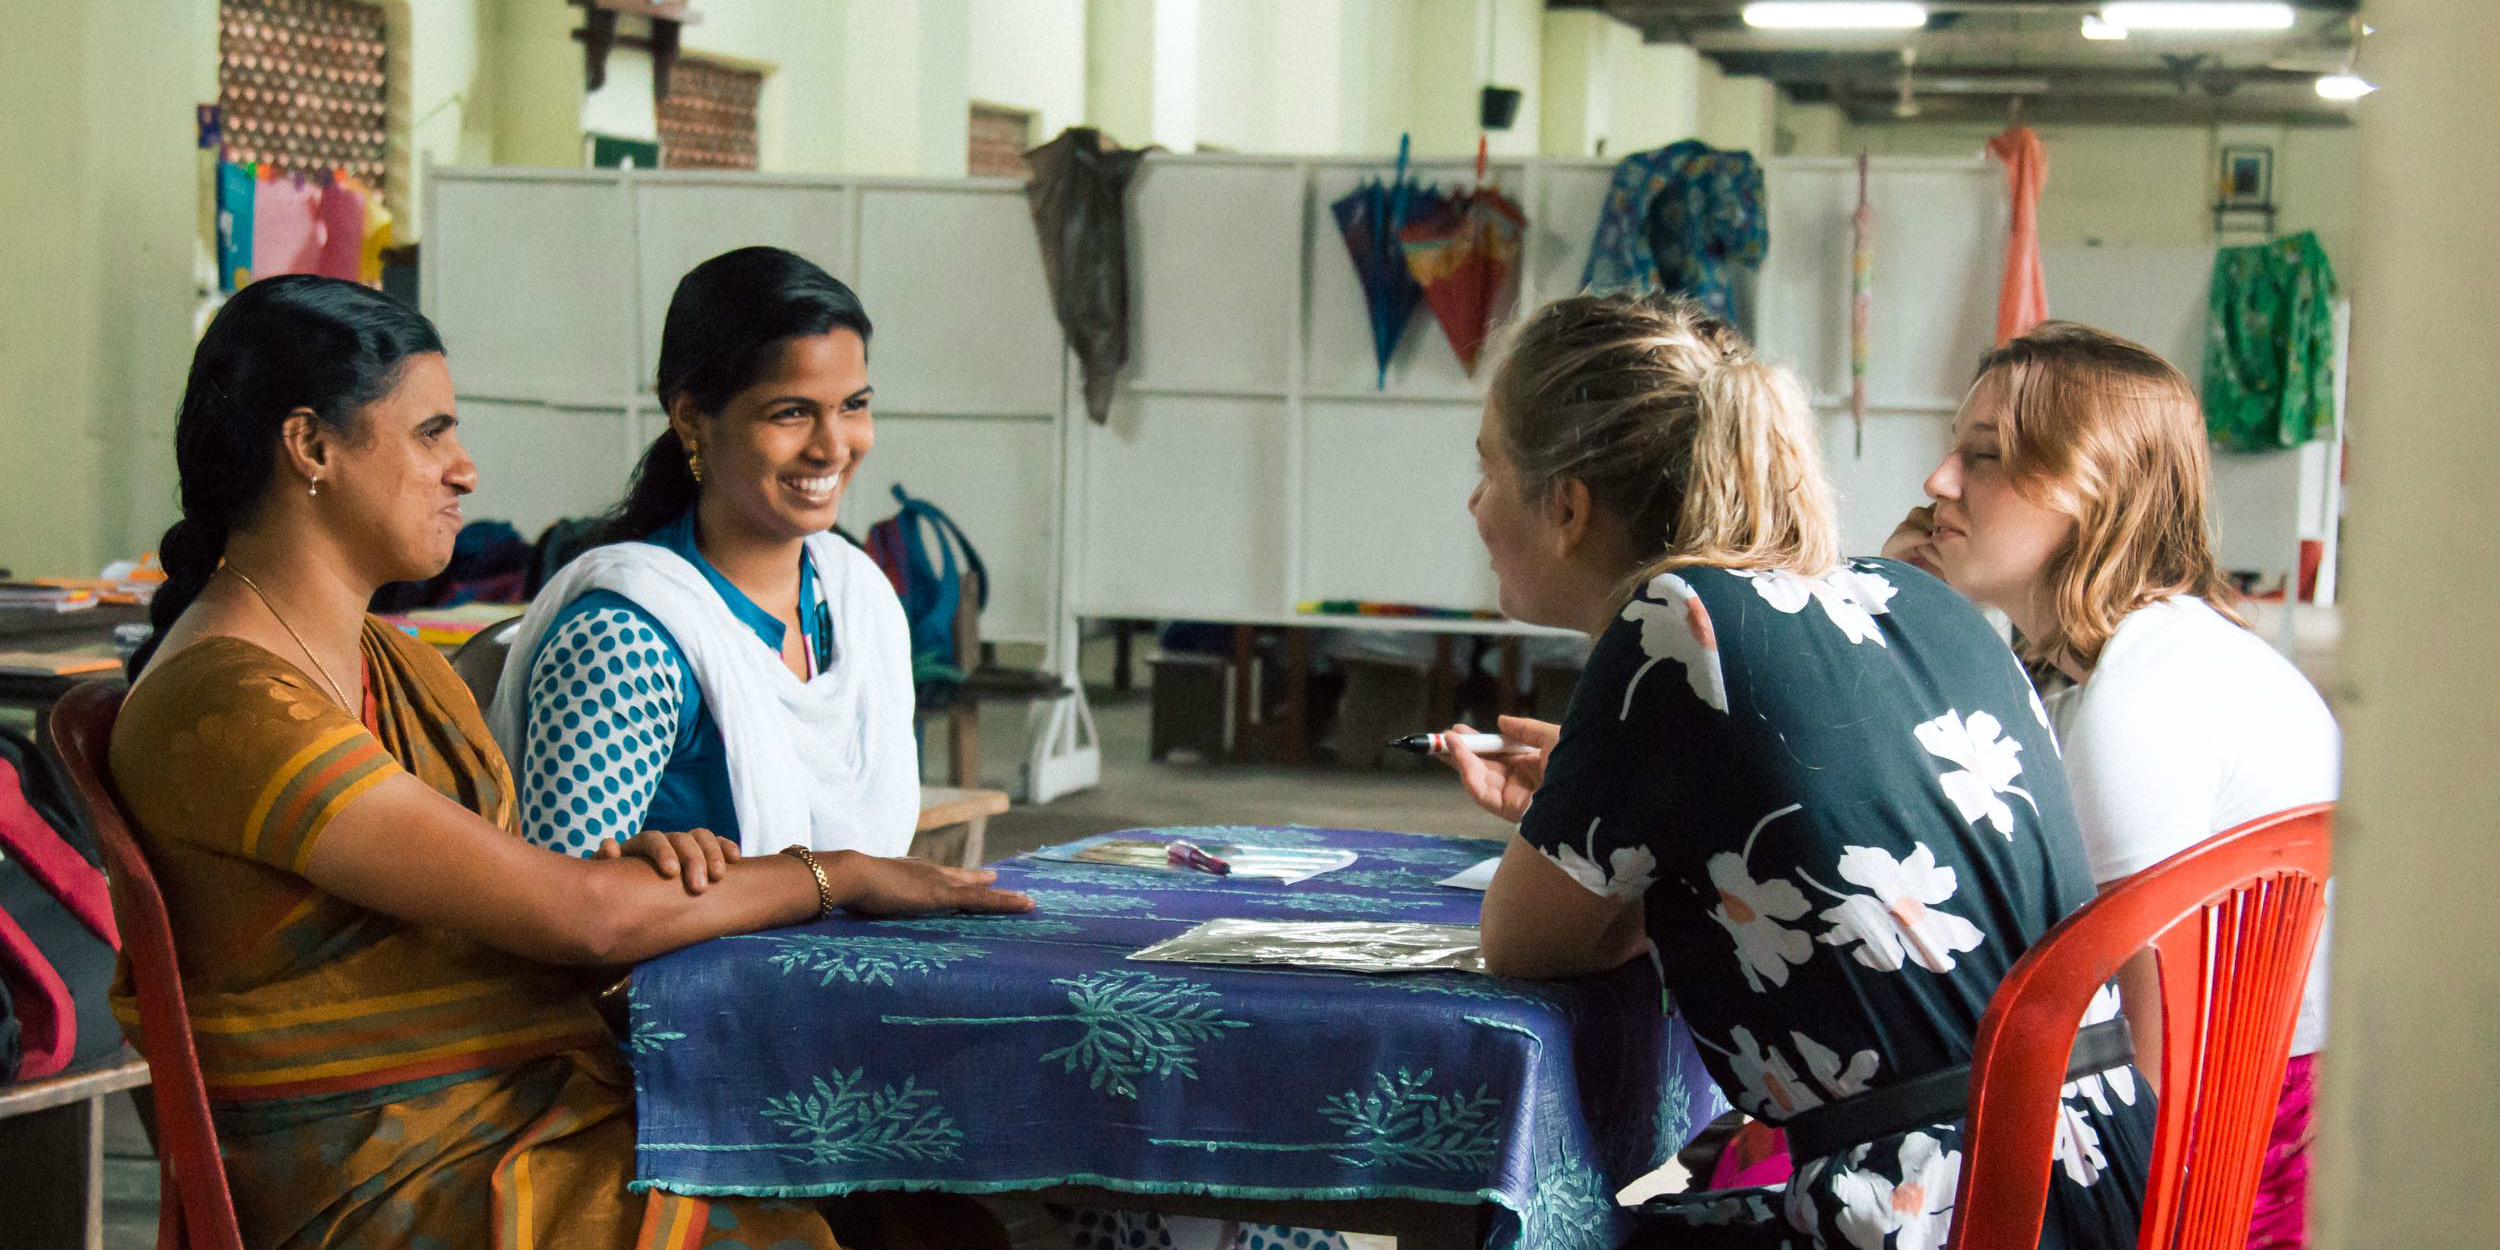 GVI participants engage with women in Kerala, India as part of womens empowerment programs. This is one of many career break ideas.